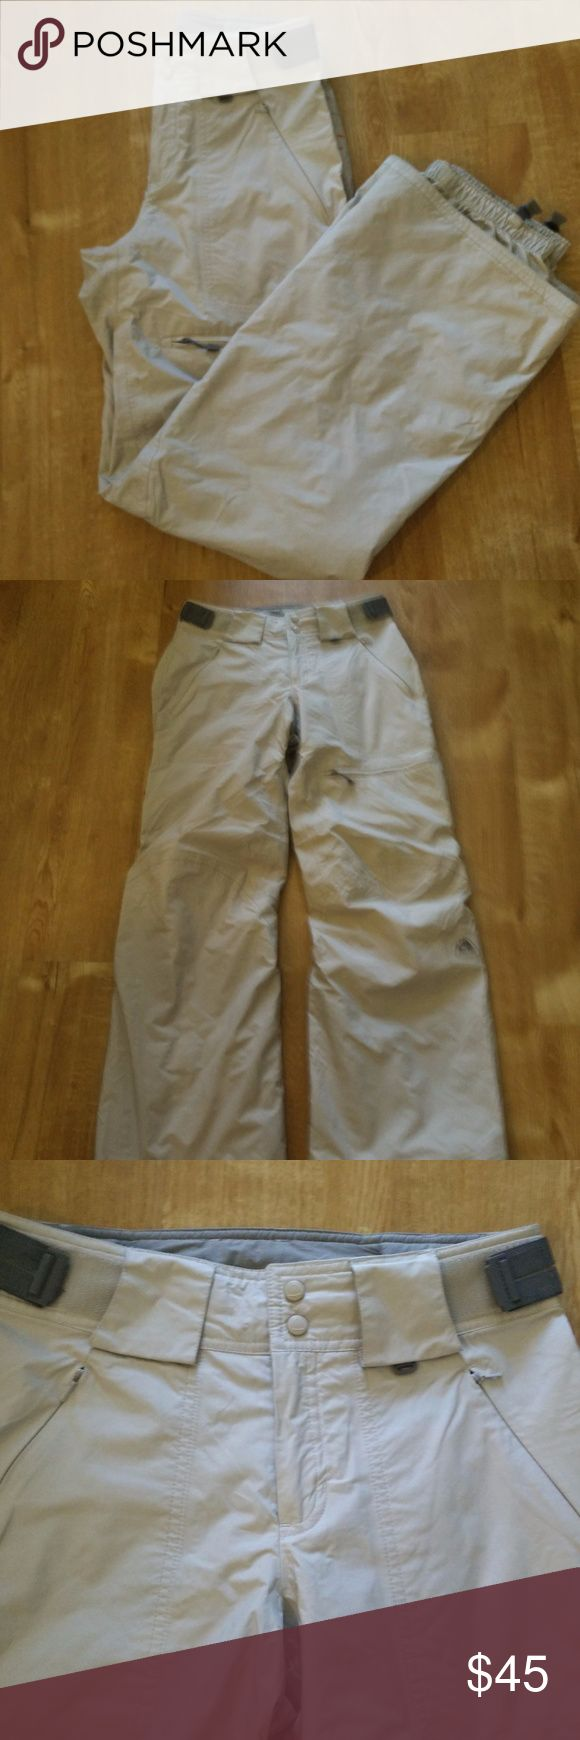 "Nike ACG Snow Pants Nike ACG Snow Pants Women's 3 Outer Layer Khaki Winter Ski Snowboarding Size XS (0-2) - Really Nice Ski Pants in EXCELLENT condition with no flaws observed!  (Ref#1906)  Please see measurements for good fit     Measurements:  (With Pants Laying Flat – Actual Measurements are taken to the best of our ability and are approximate)     Waist  - 27""  Inseam - 31""  Rise - 9.25"" Nike Pants"